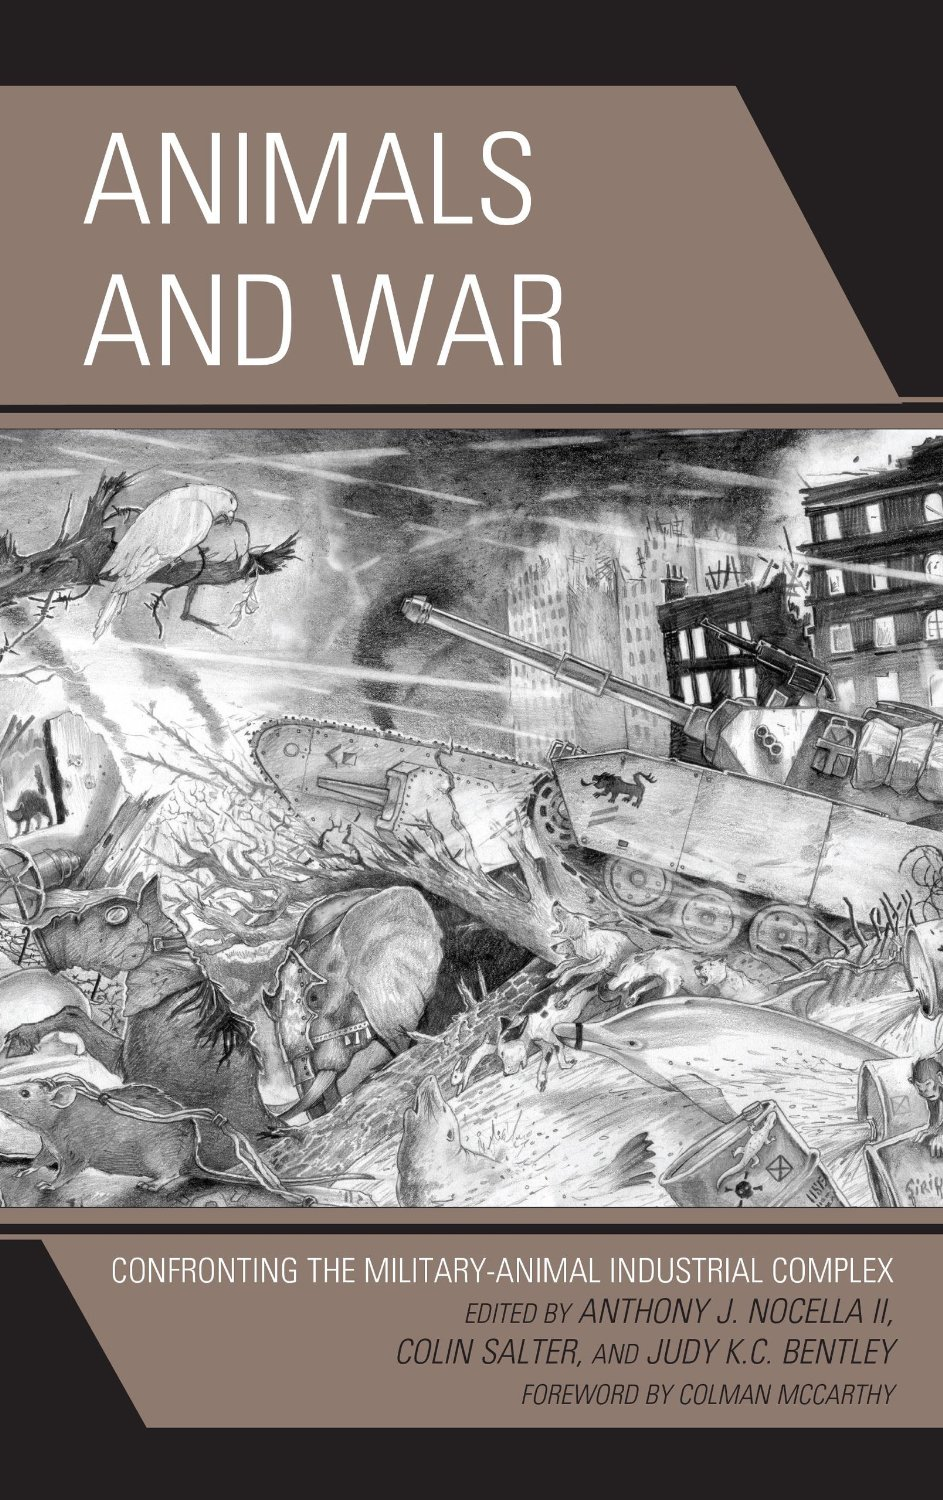 animals-and-war-cover 2